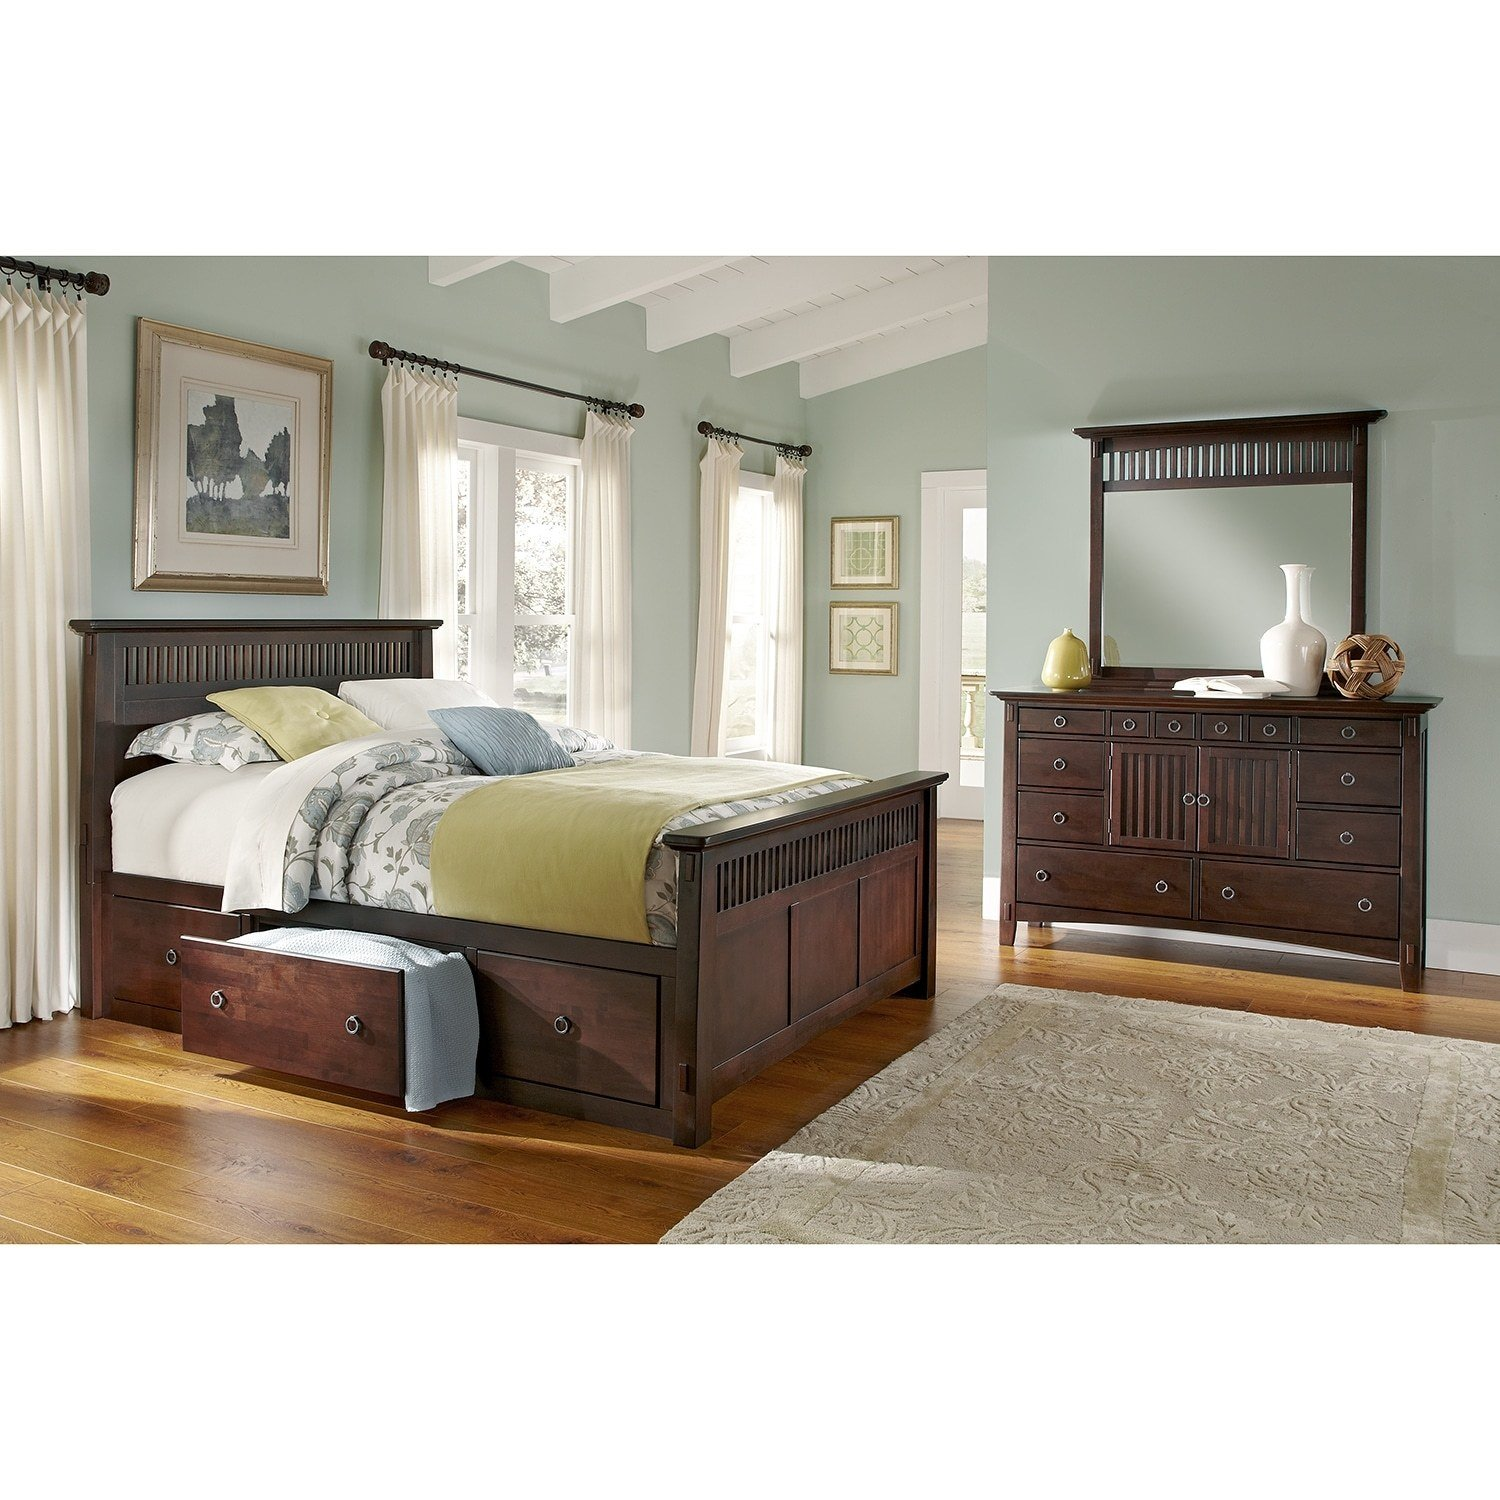 Best Value City Furniture With Pictures